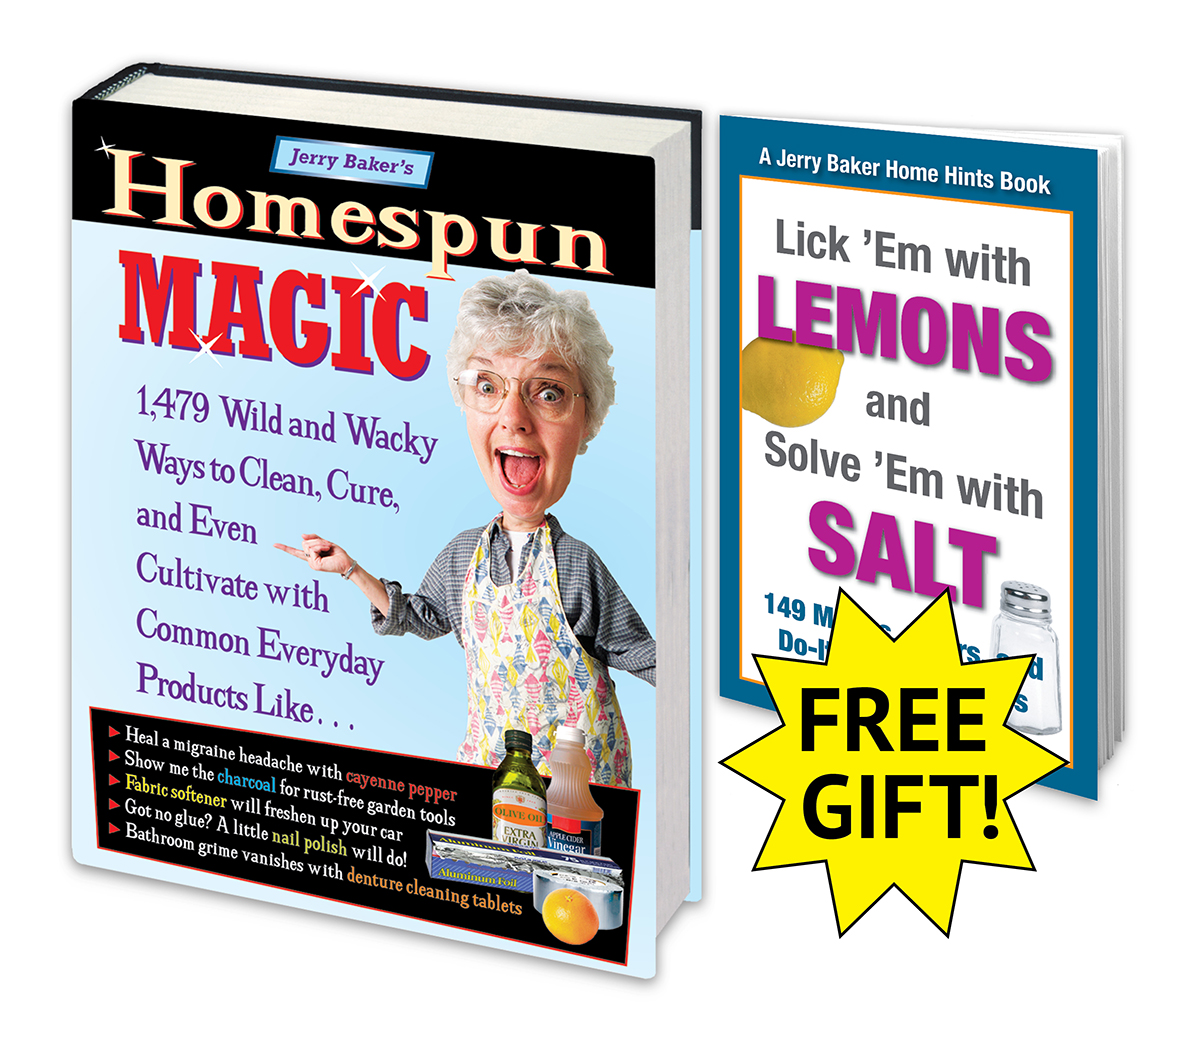 Homespun Magic